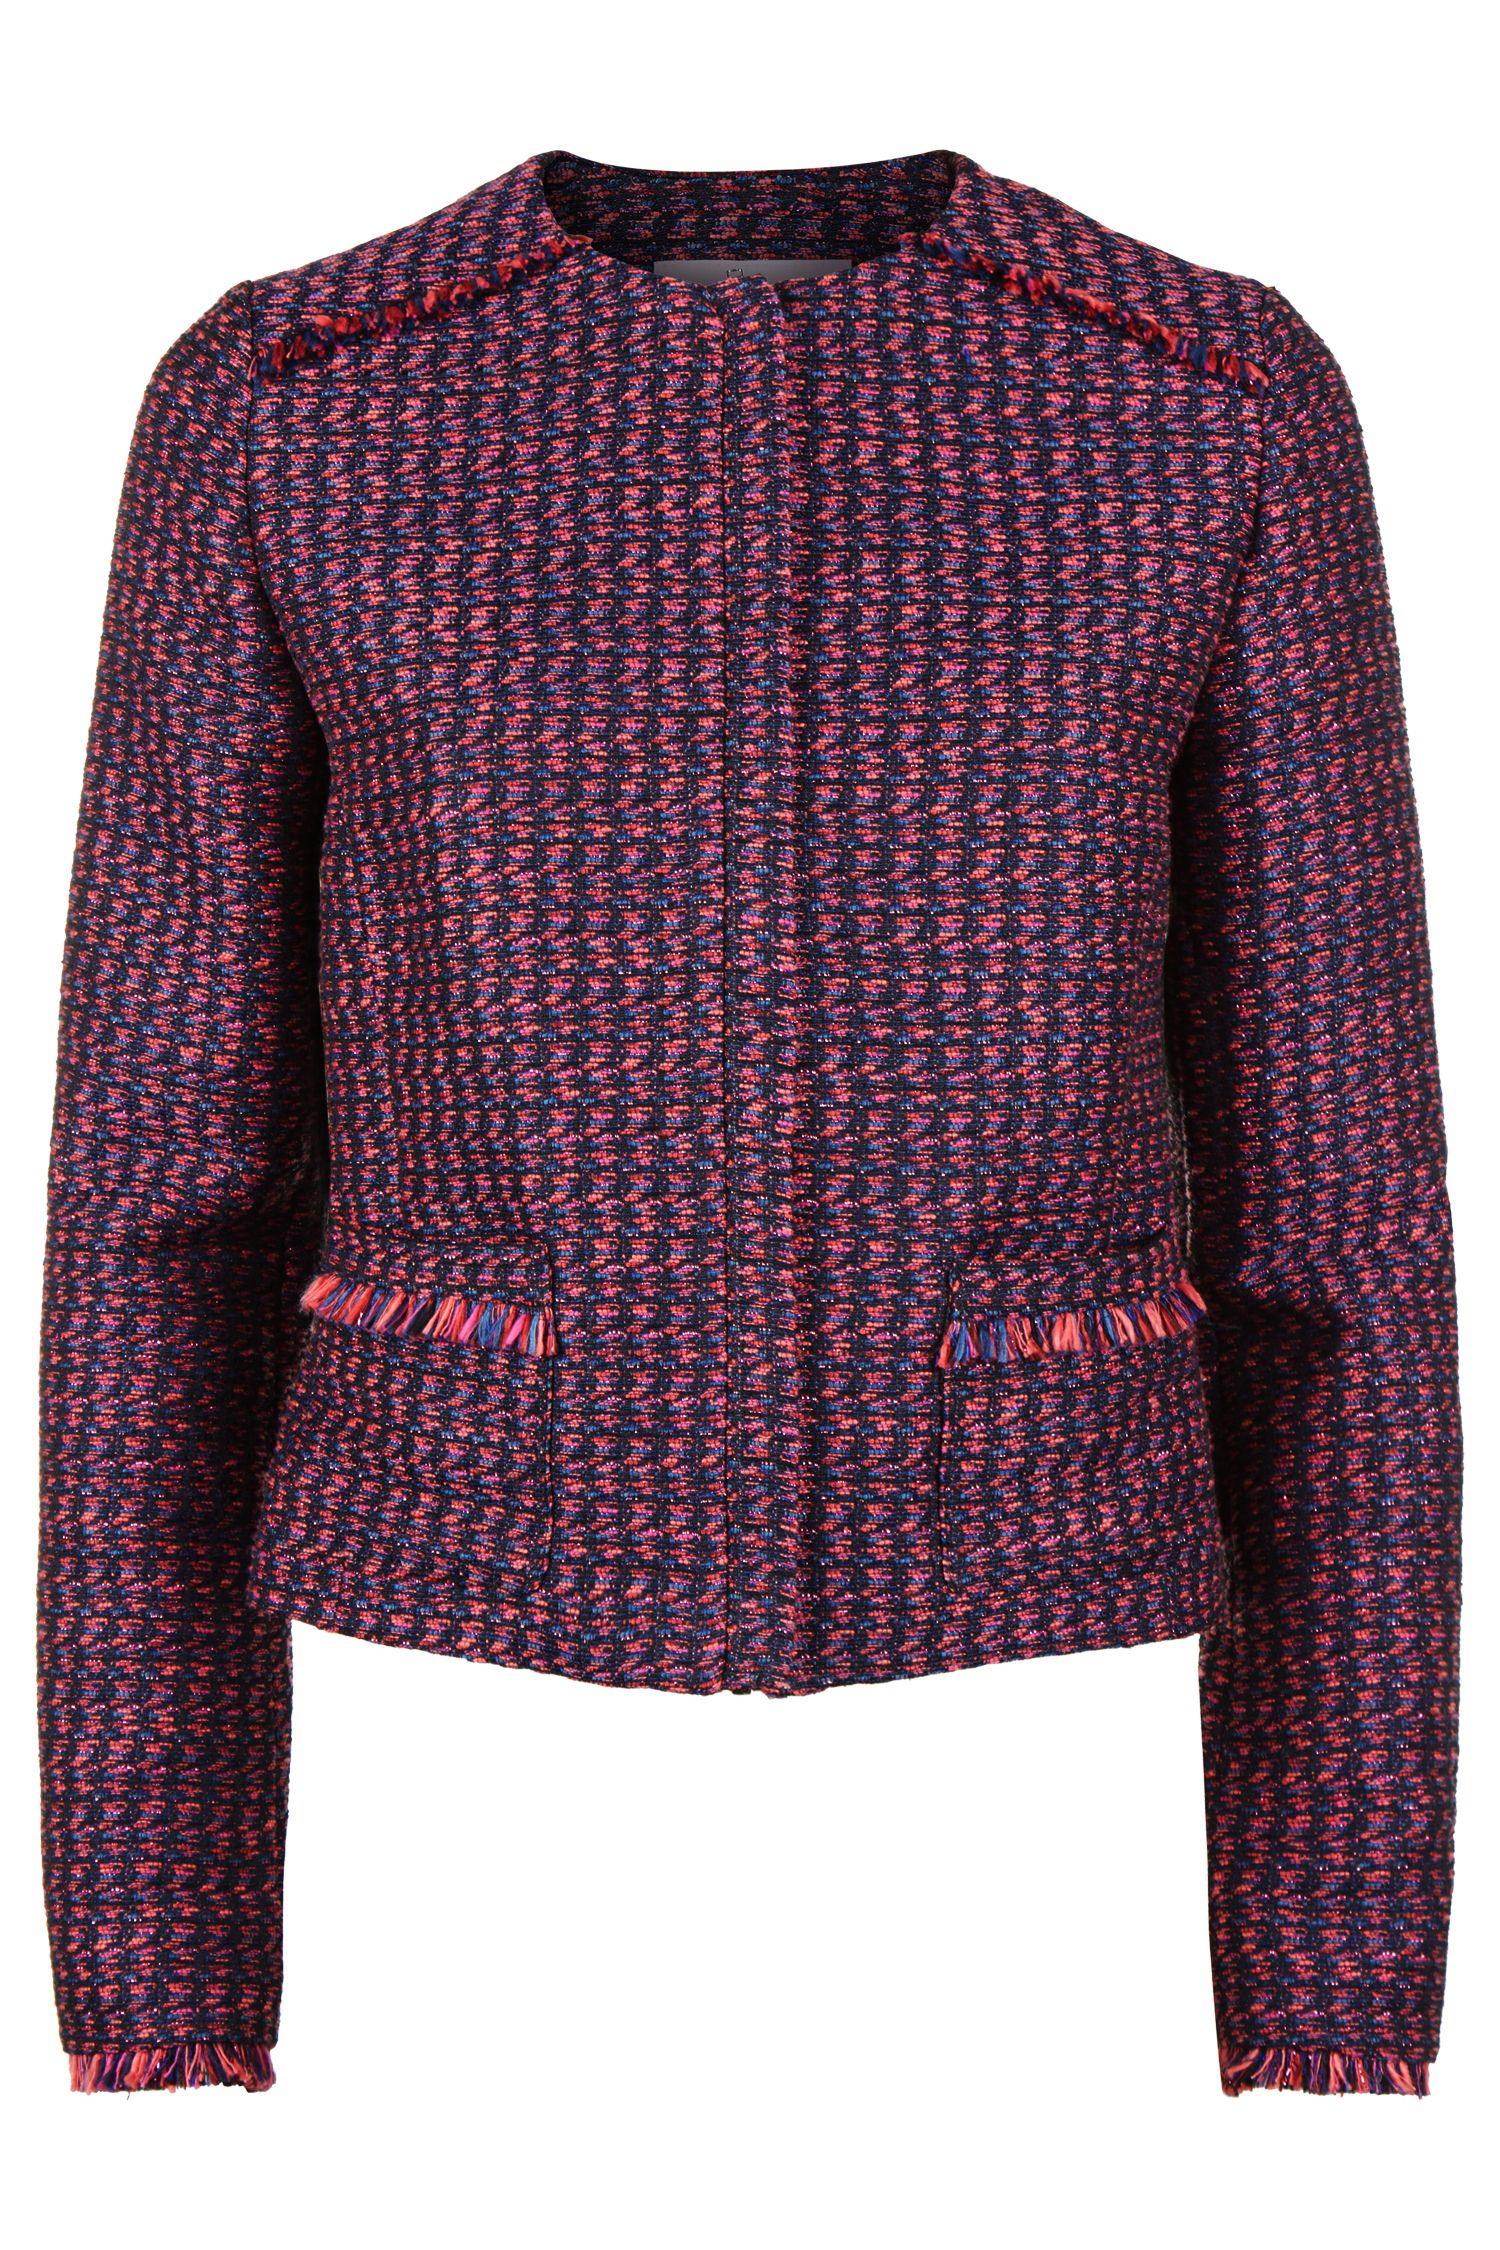 Fenn Wright Manson Rocket Jacket, Multi-Coloured